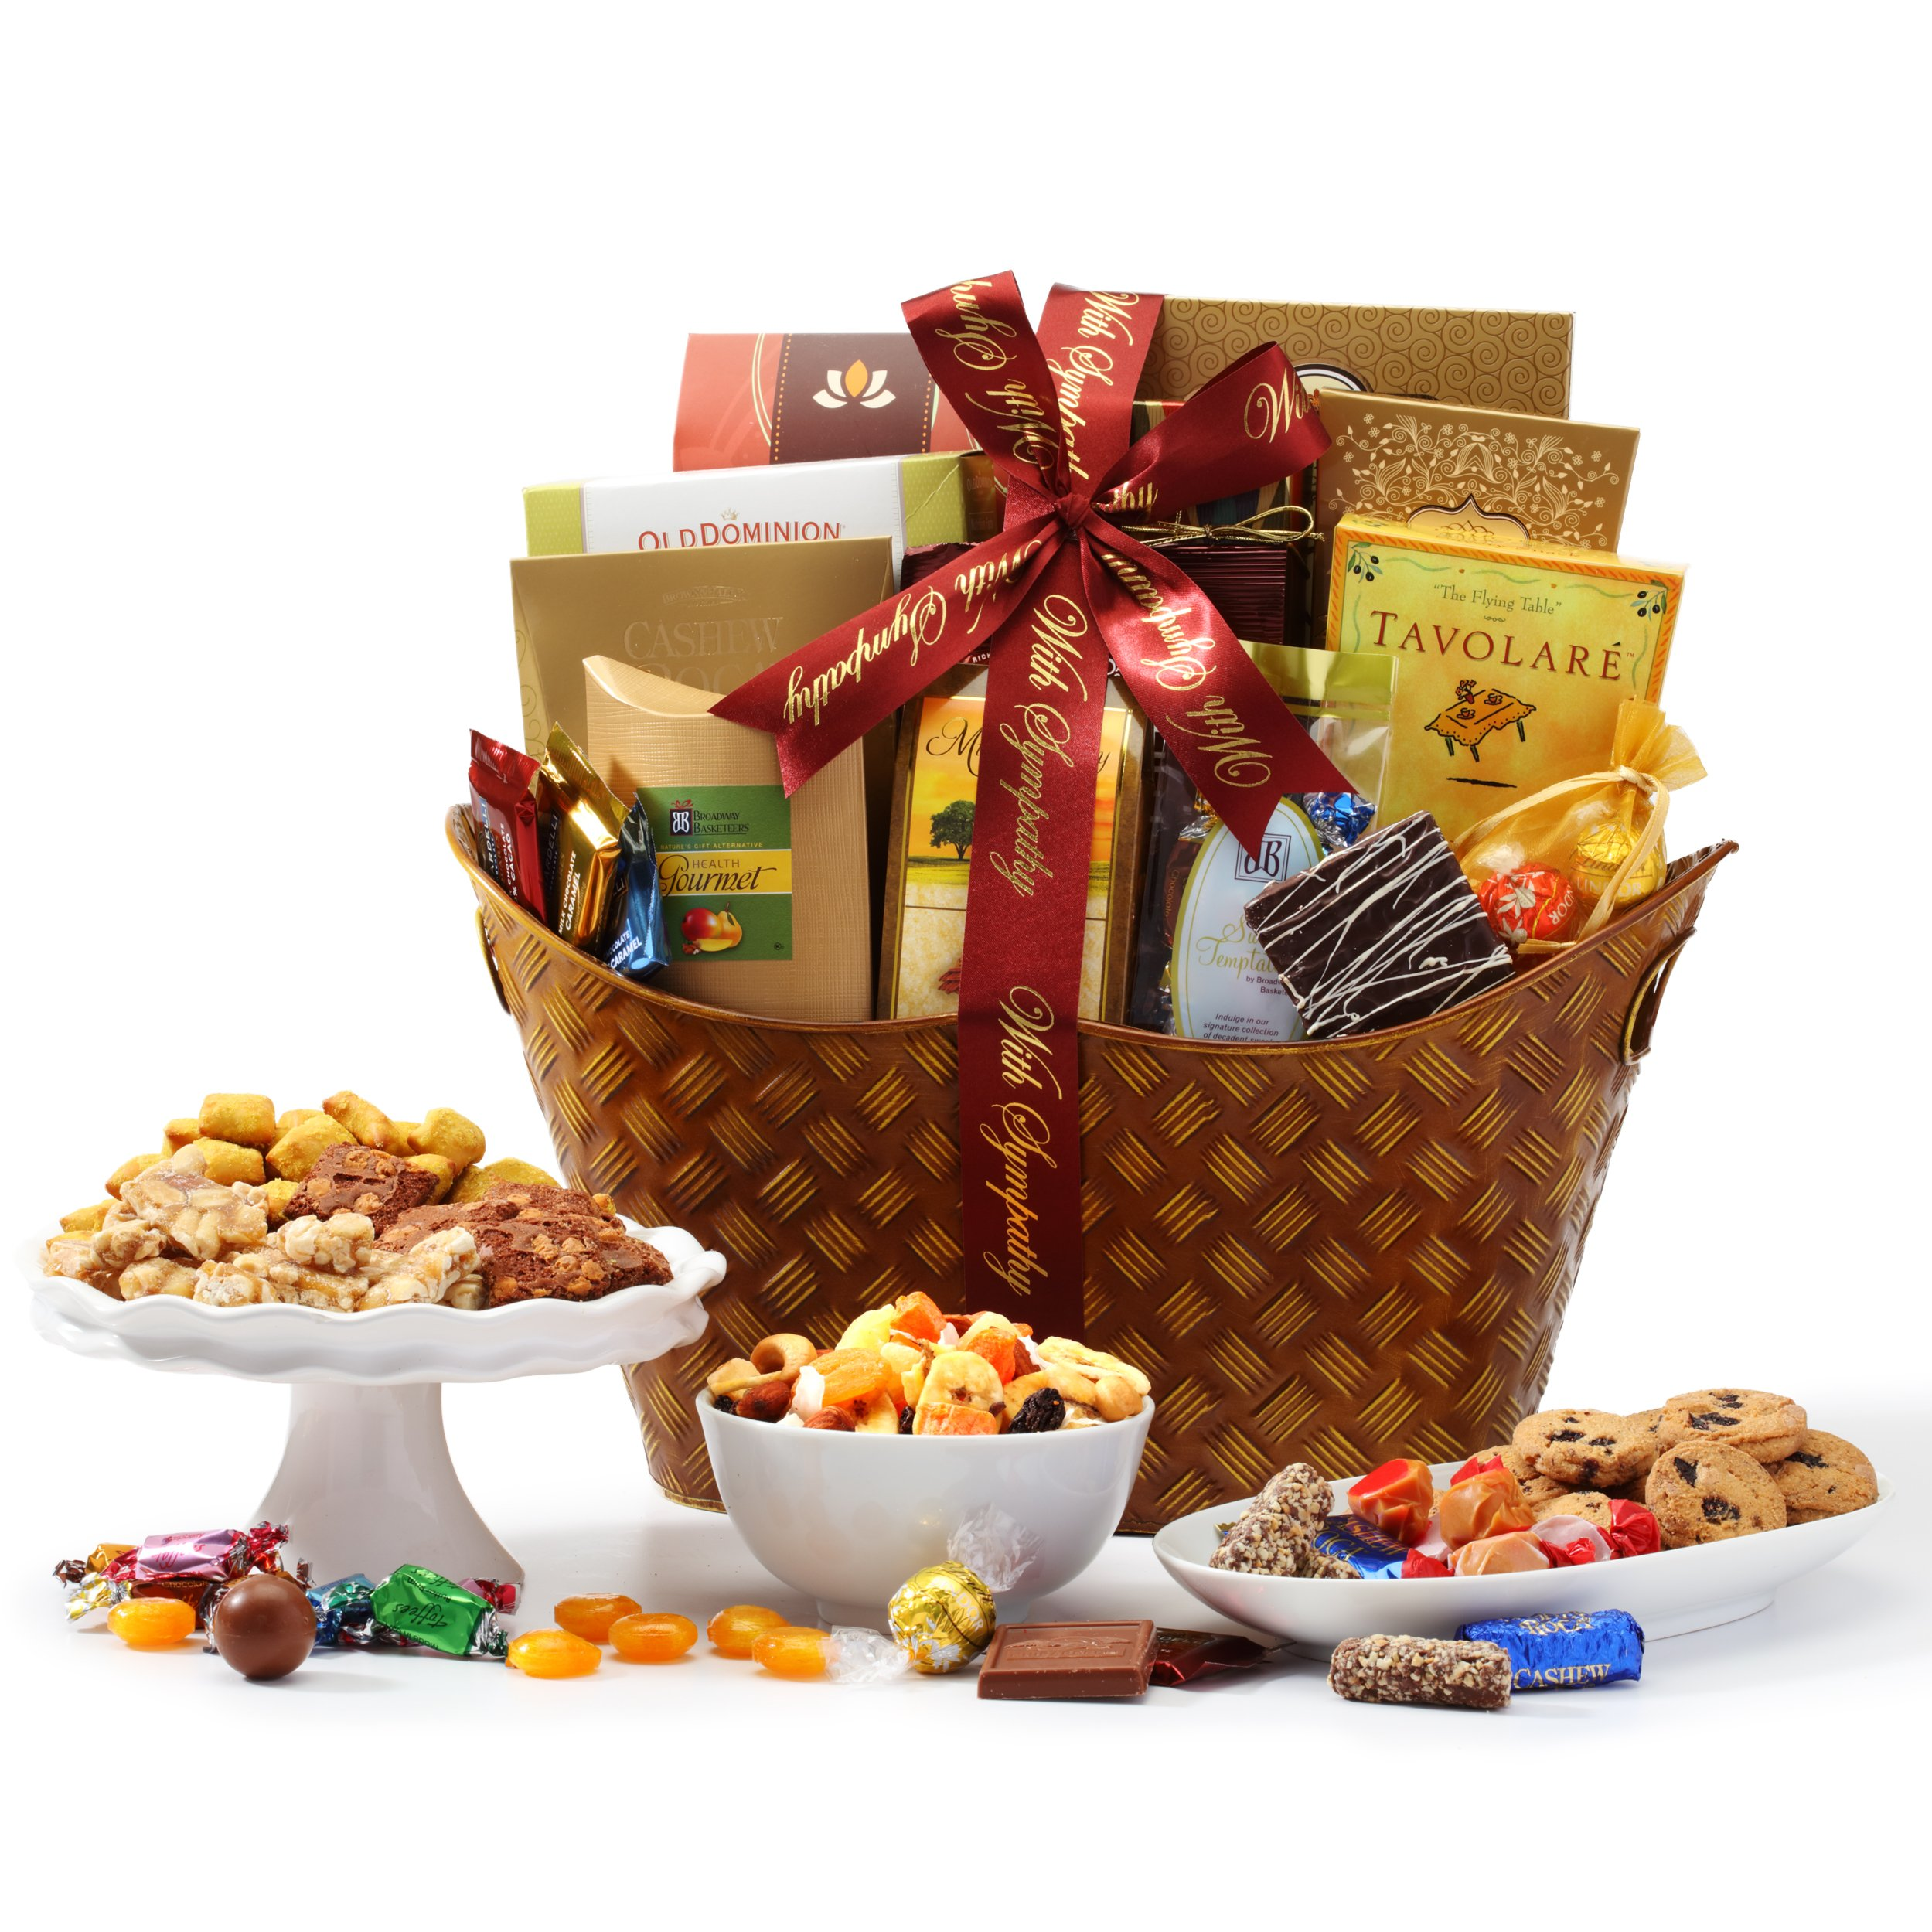 Broadway Basketeers Classic Sympathy Gift Basket for loss of mother, father or friend - Send A Sympathy Gift for Loss of a Loved One with Prime Delivery